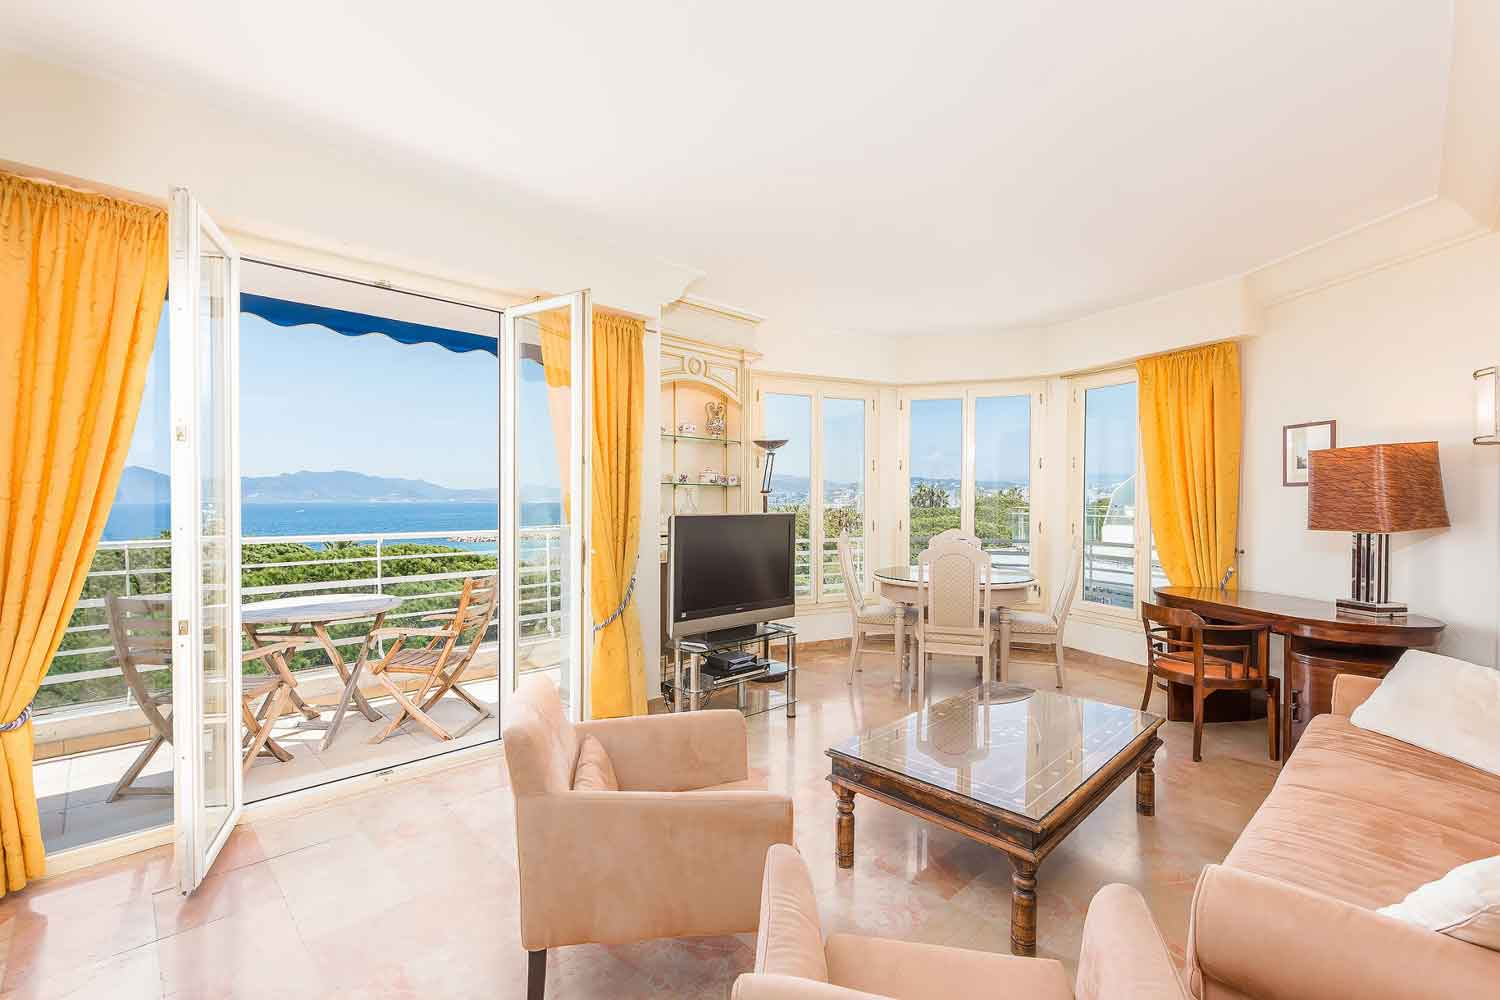 <b>Cannes, France</b><br/><i>1 Bedroom, 650 sq. ft.</i><br/>Sea-view apartment in glamorous Croisette Palm Beach